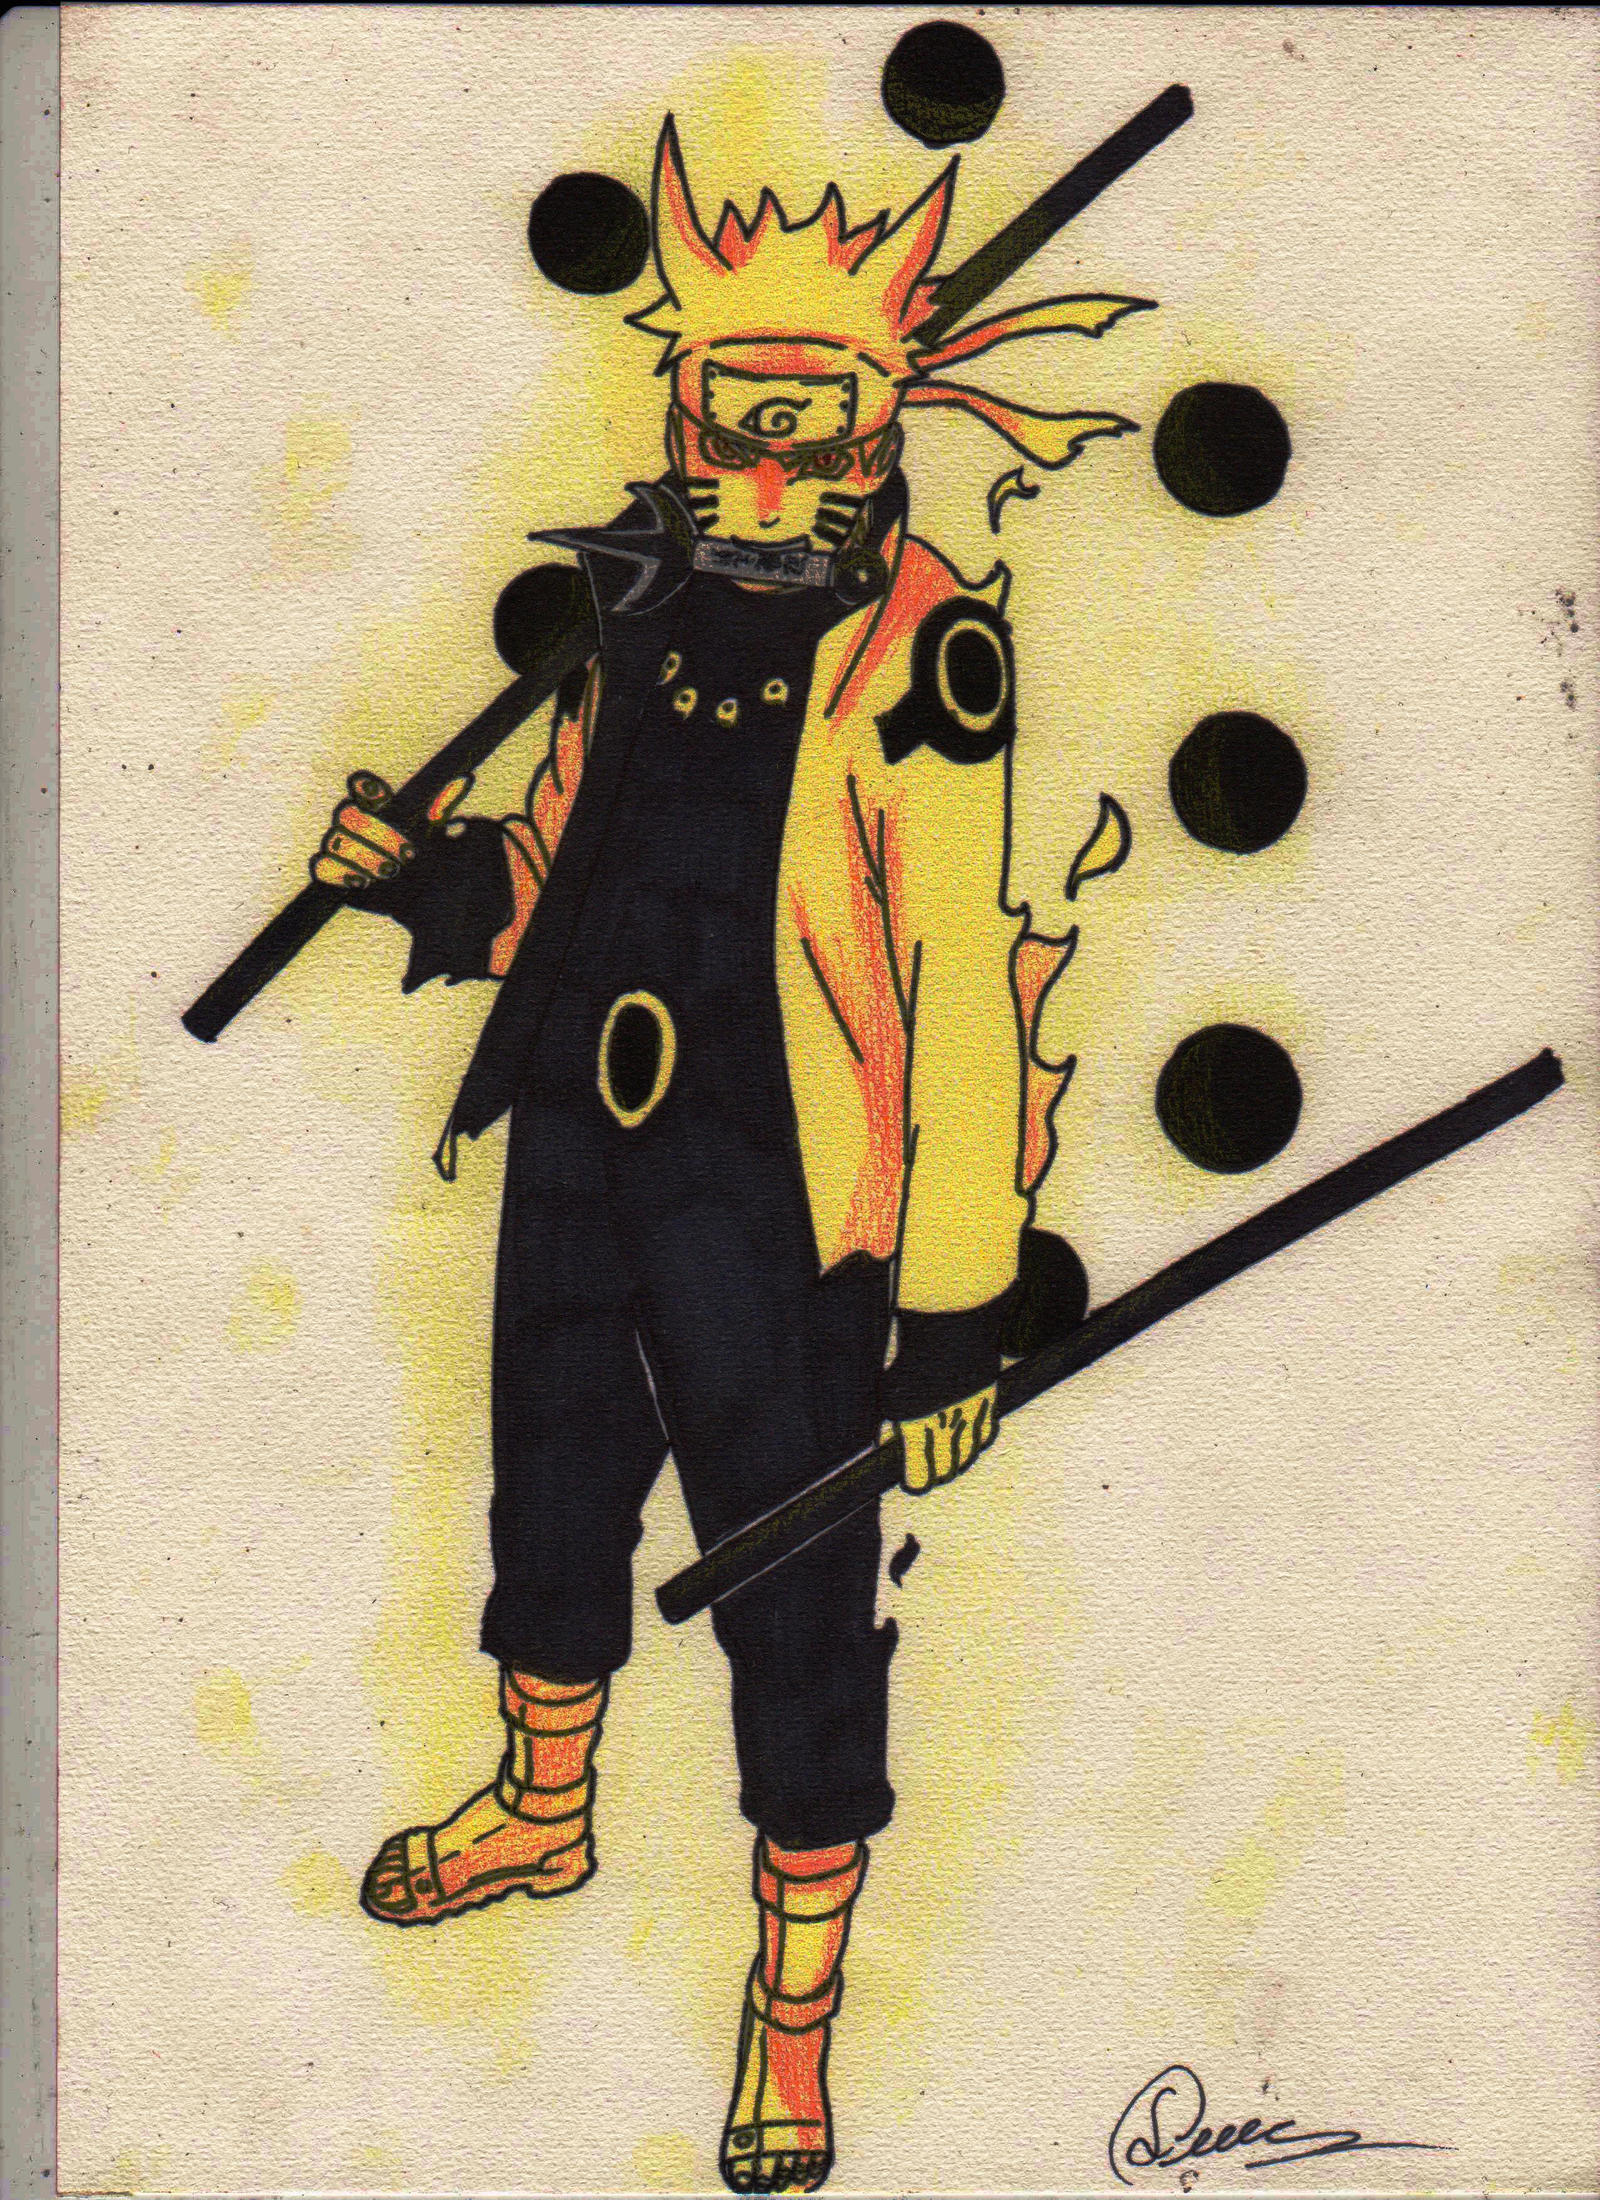 Naruto rikudou mode by Zangetsu552 on DeviantArt